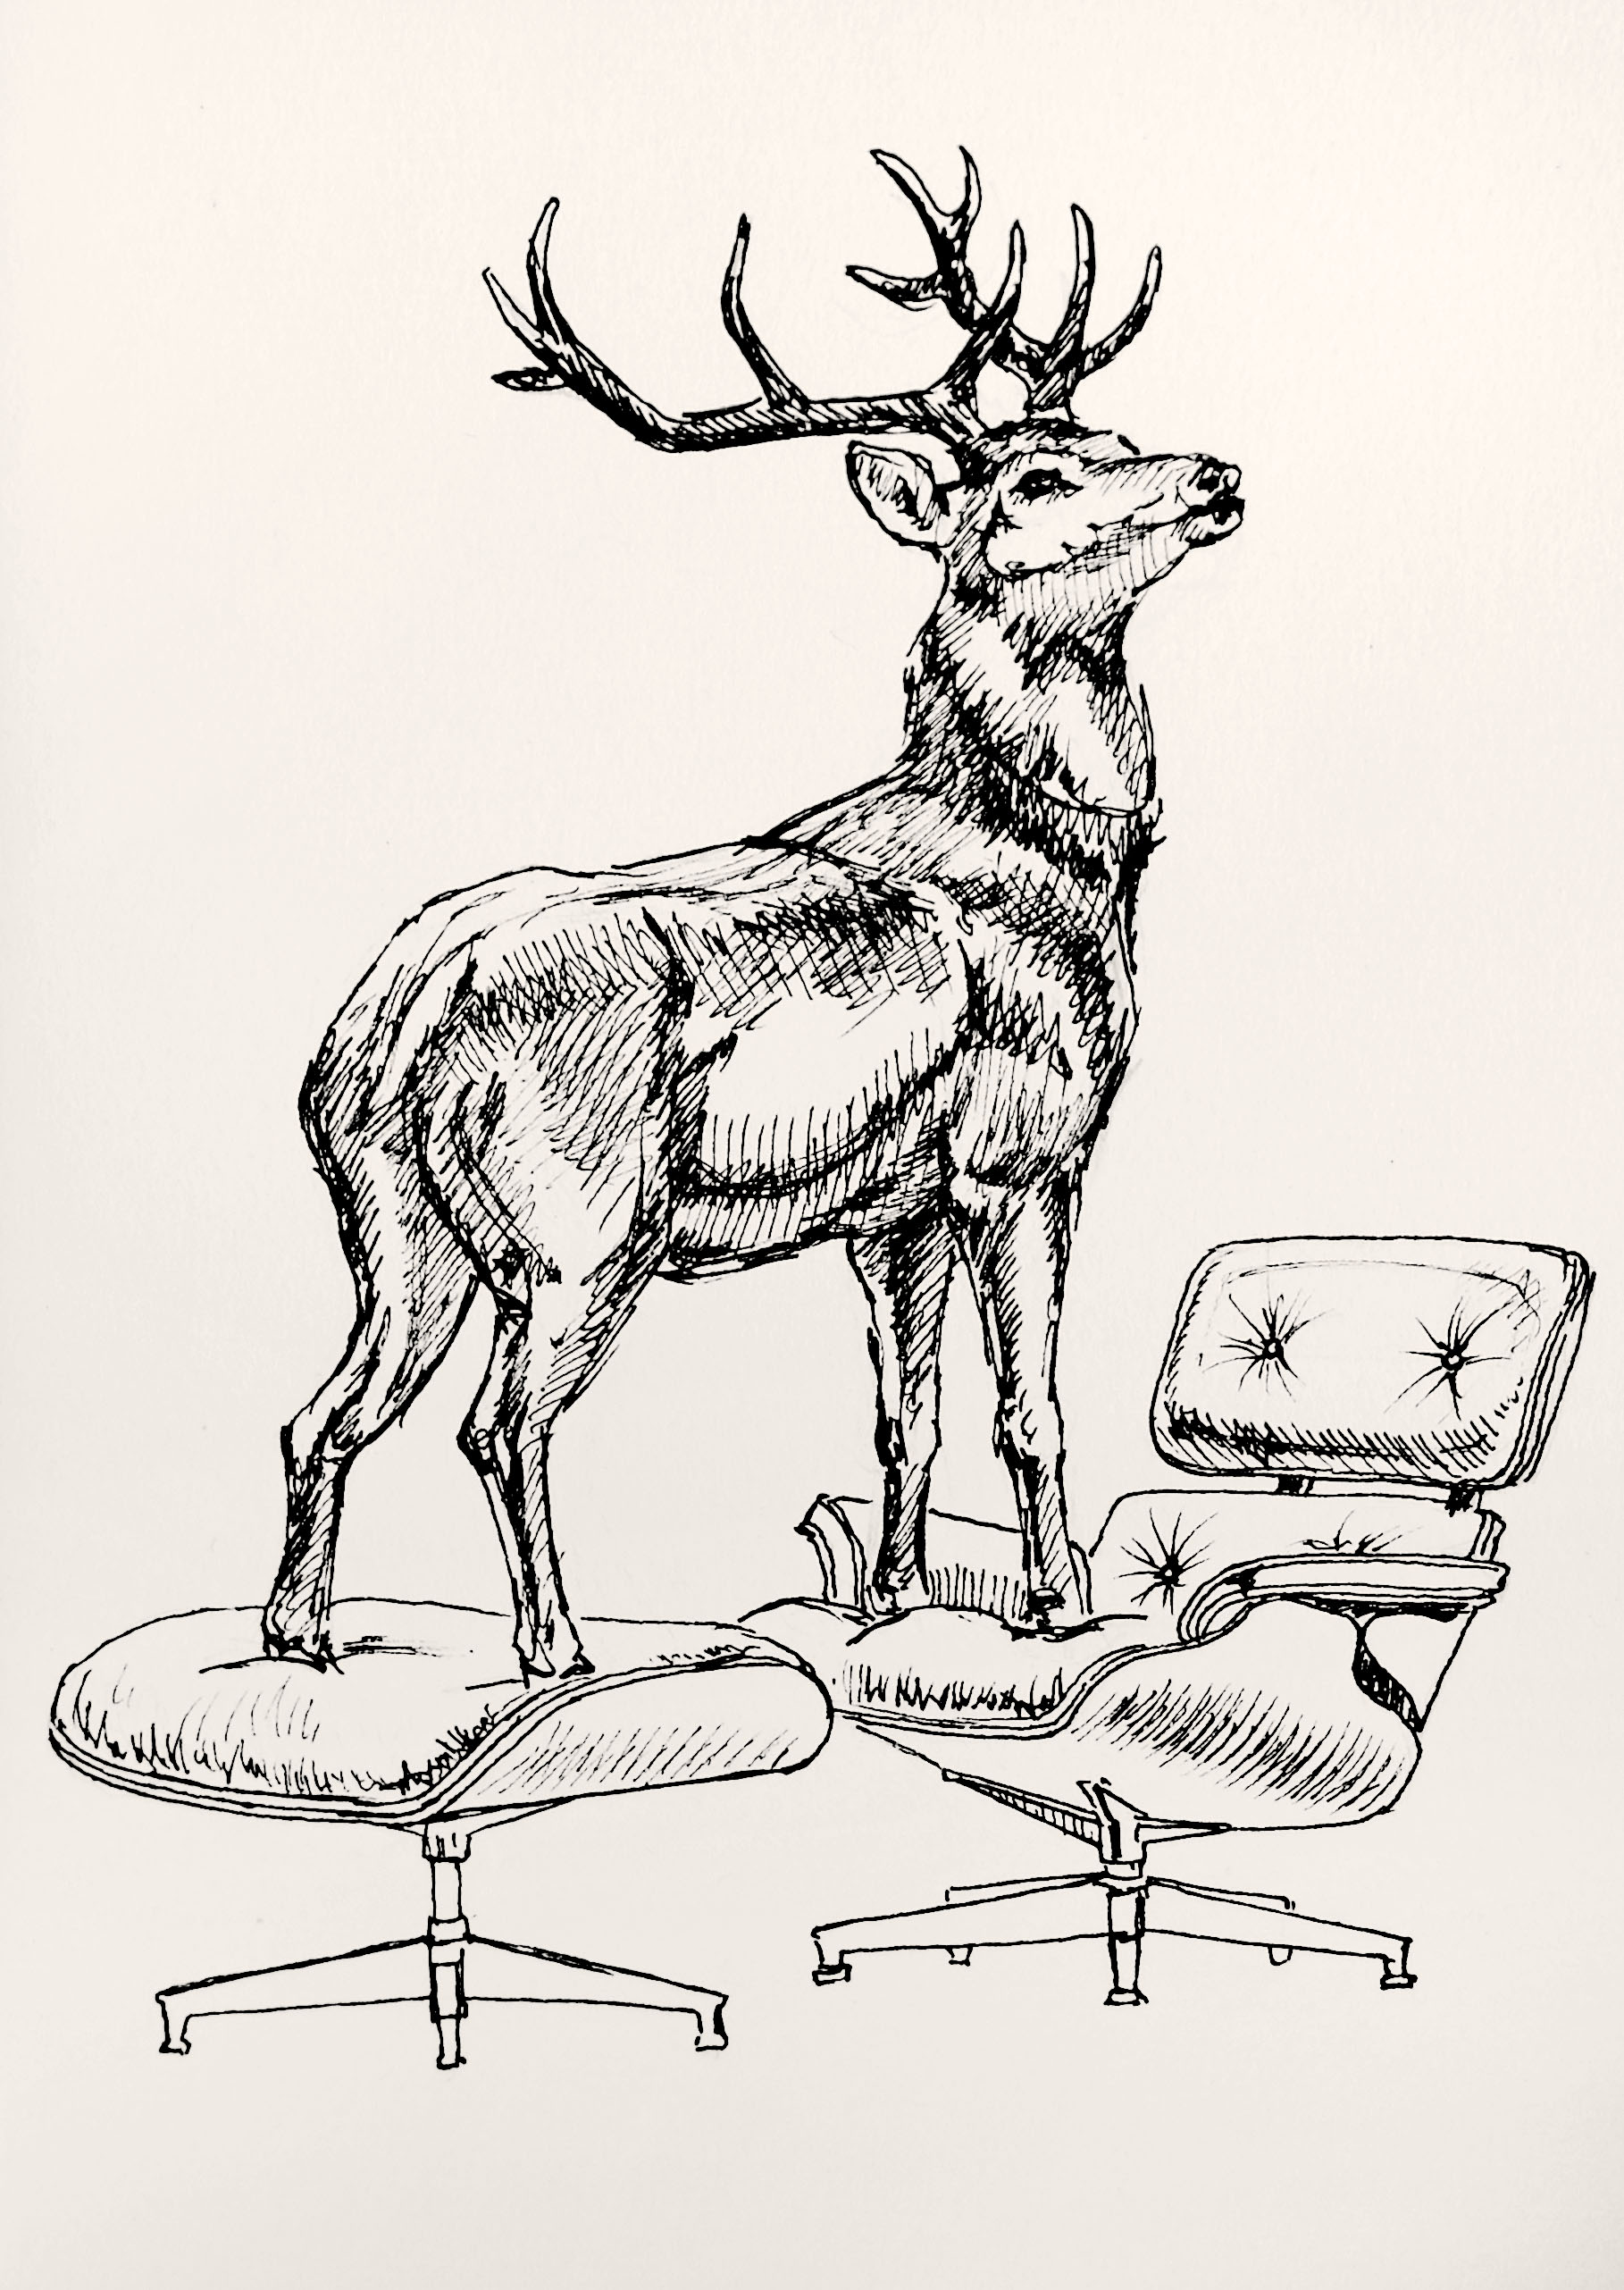 HL JR Eames deer